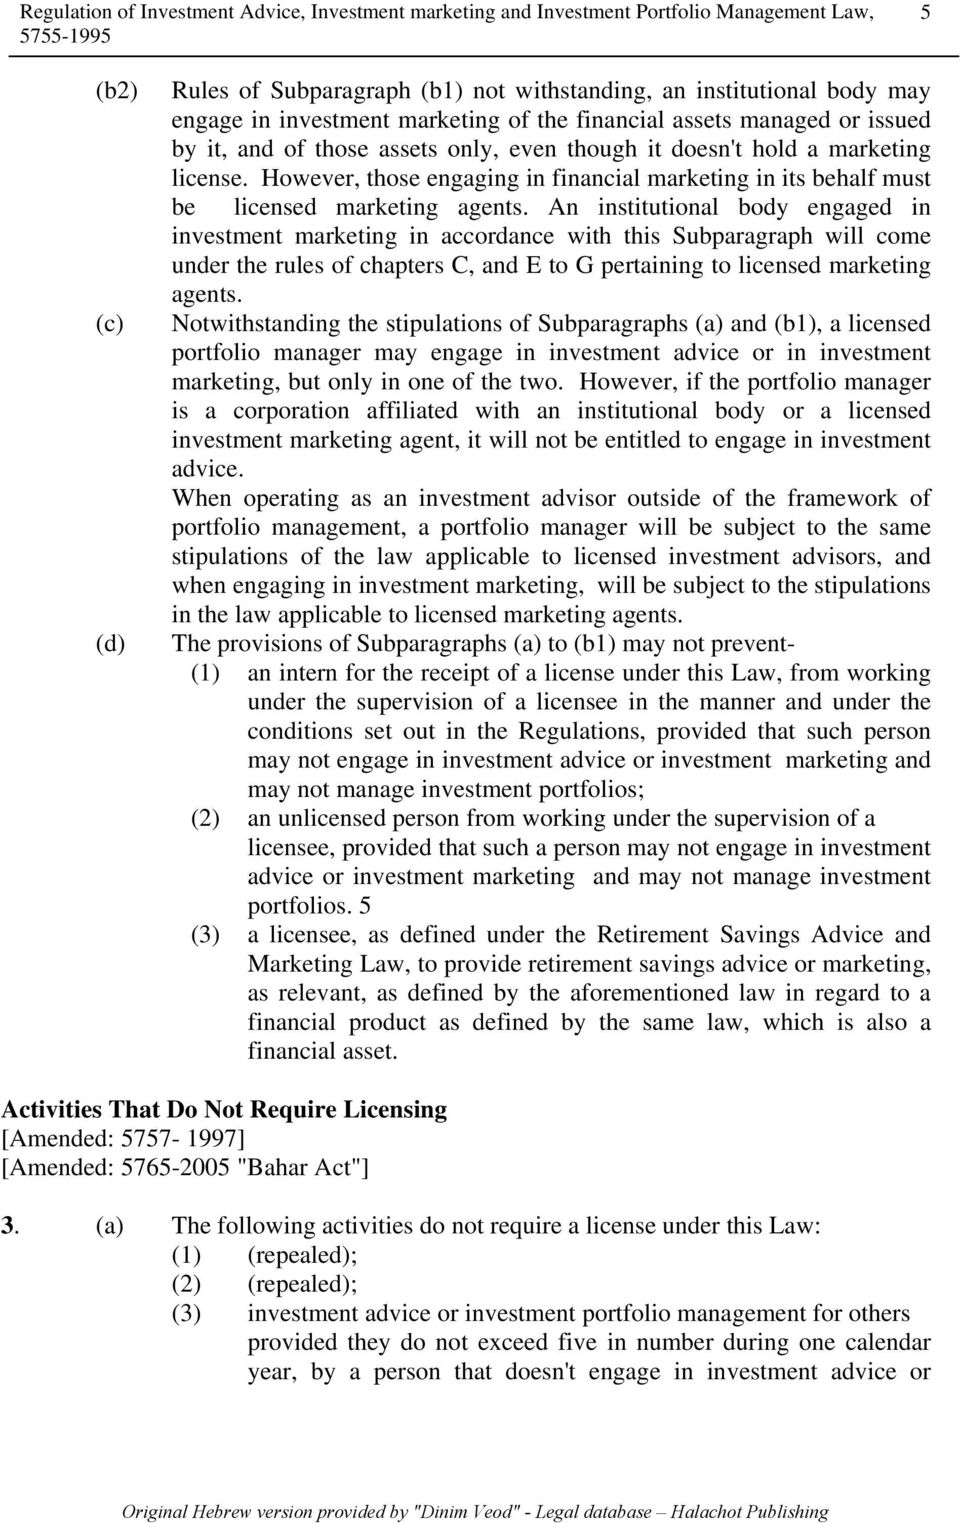 An institutional body engaged in investment marketing in accordance with this Subparagraph will come under the rules of chapters C, and E to G pertaining to licensed marketing agents.